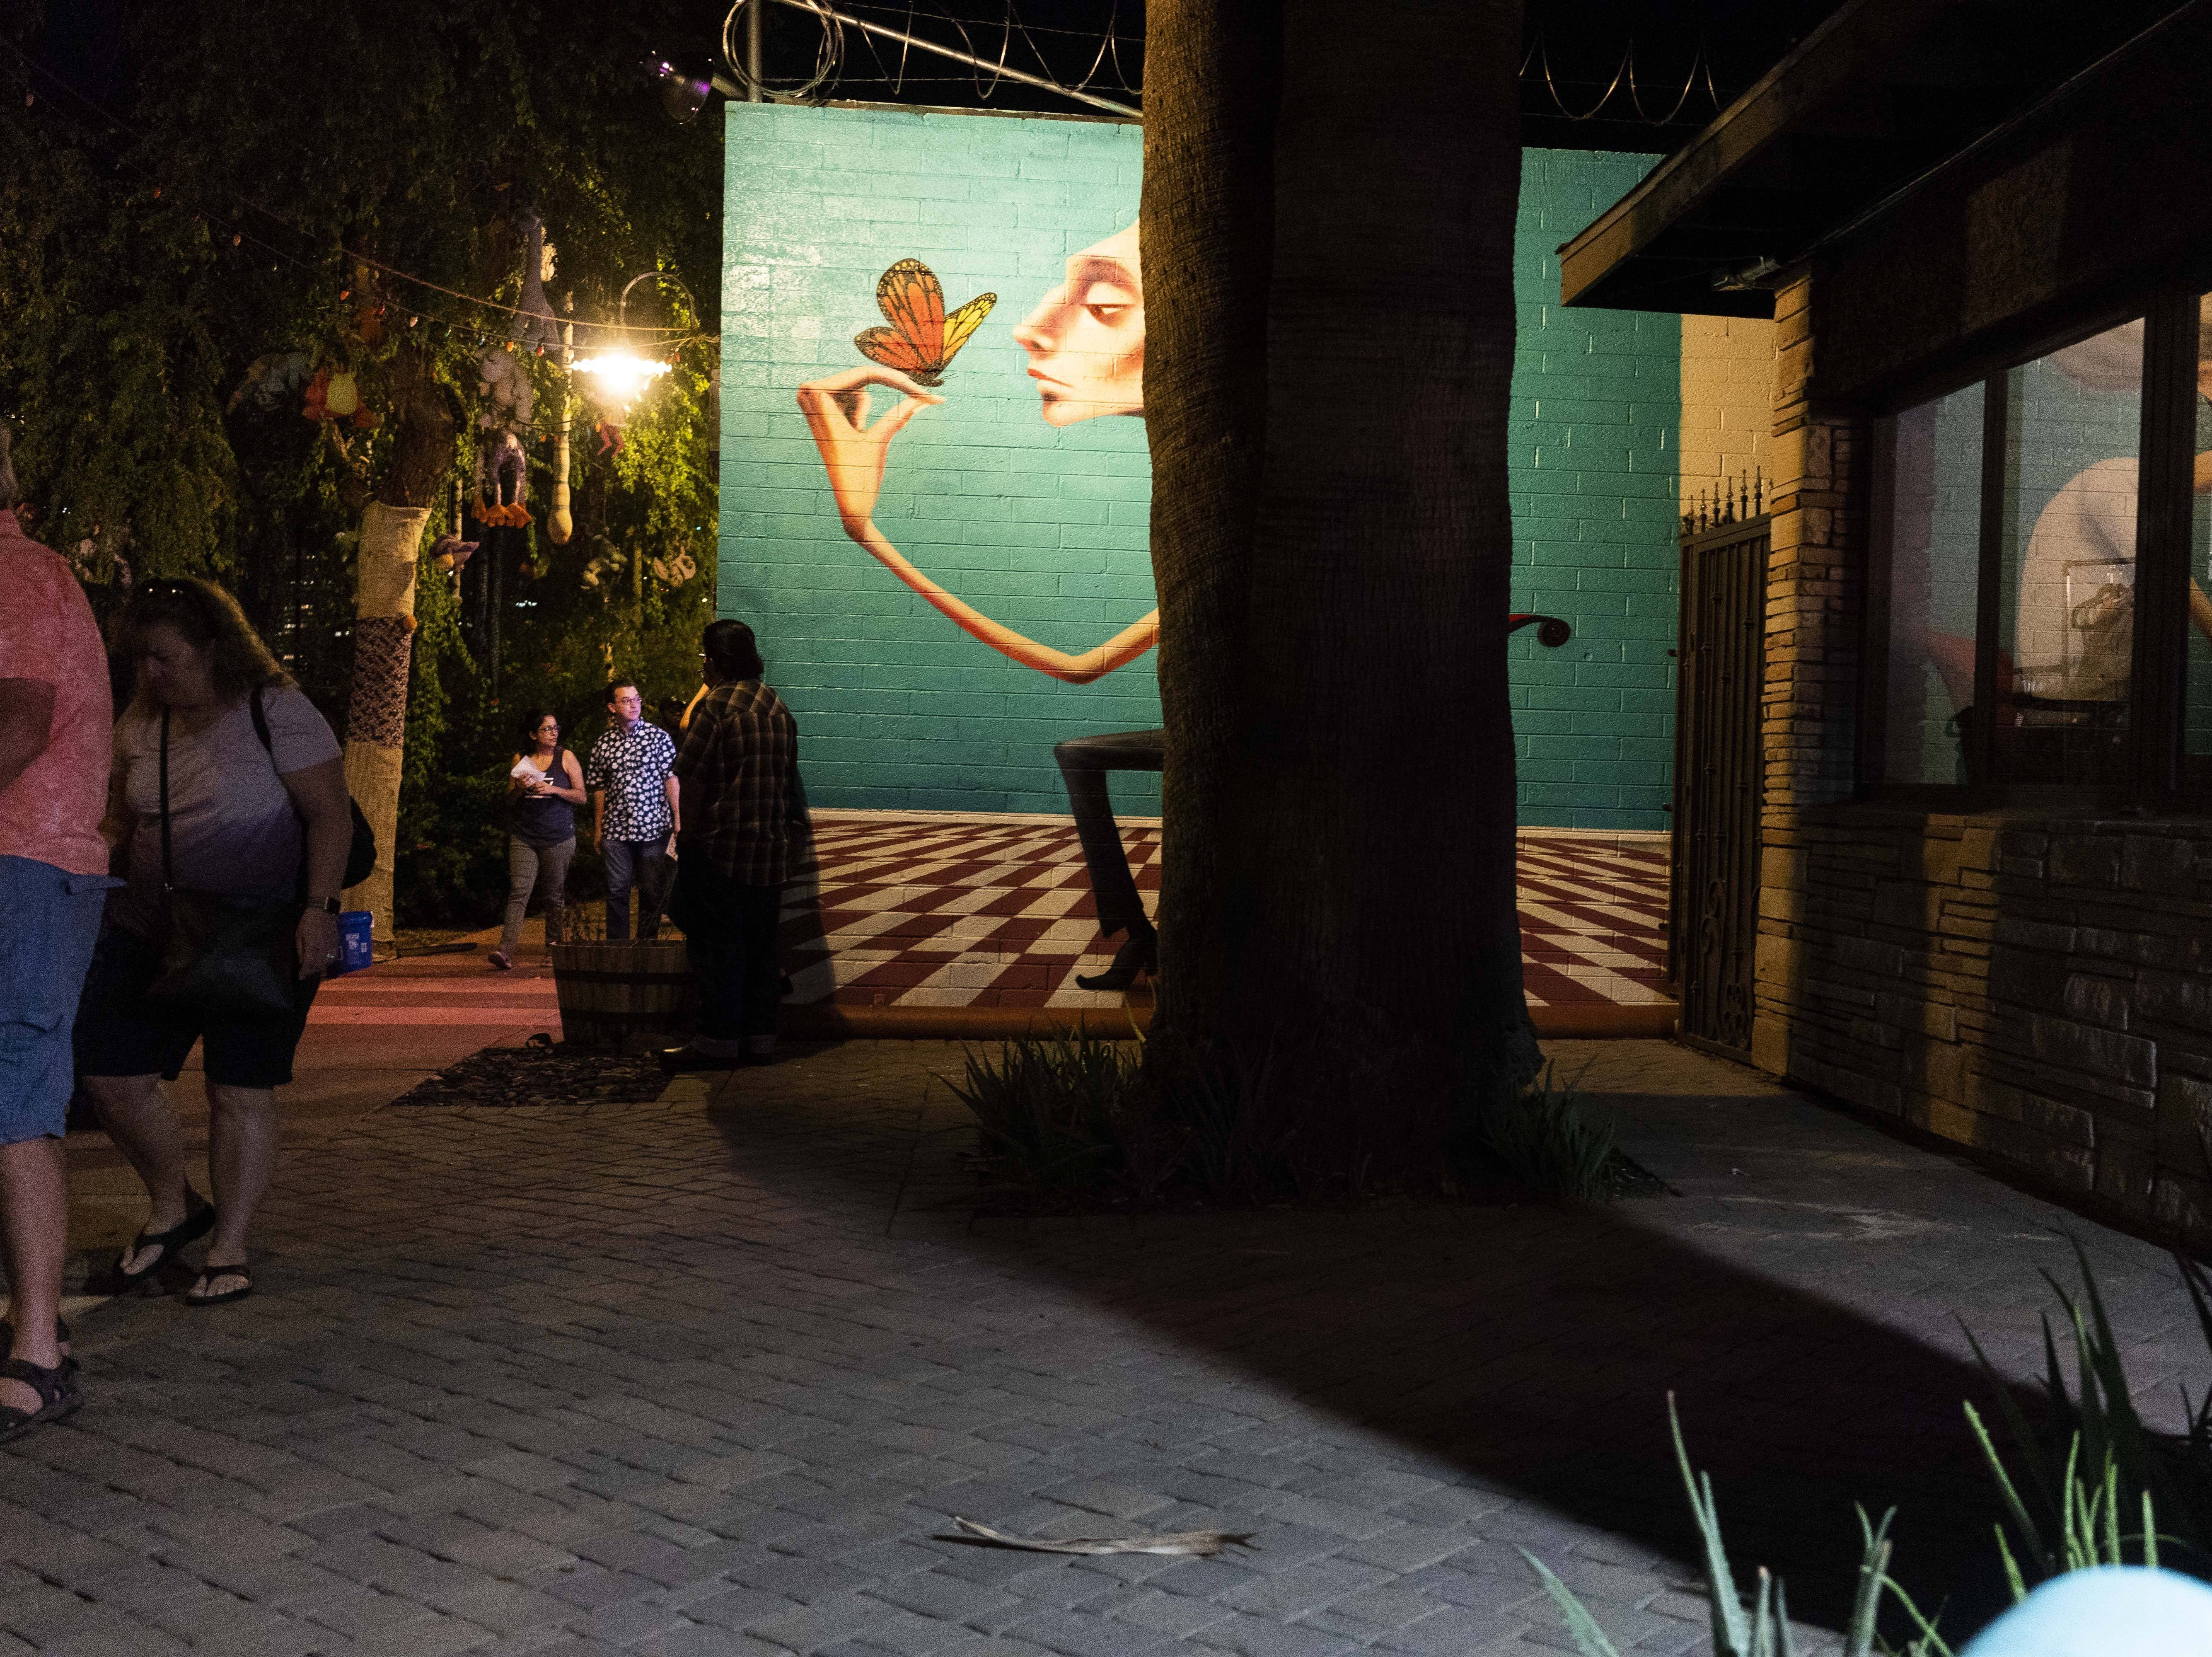 First Friday Art walk on Grand Ave in Downtown Phoenix, on Oct. 5, 2018.